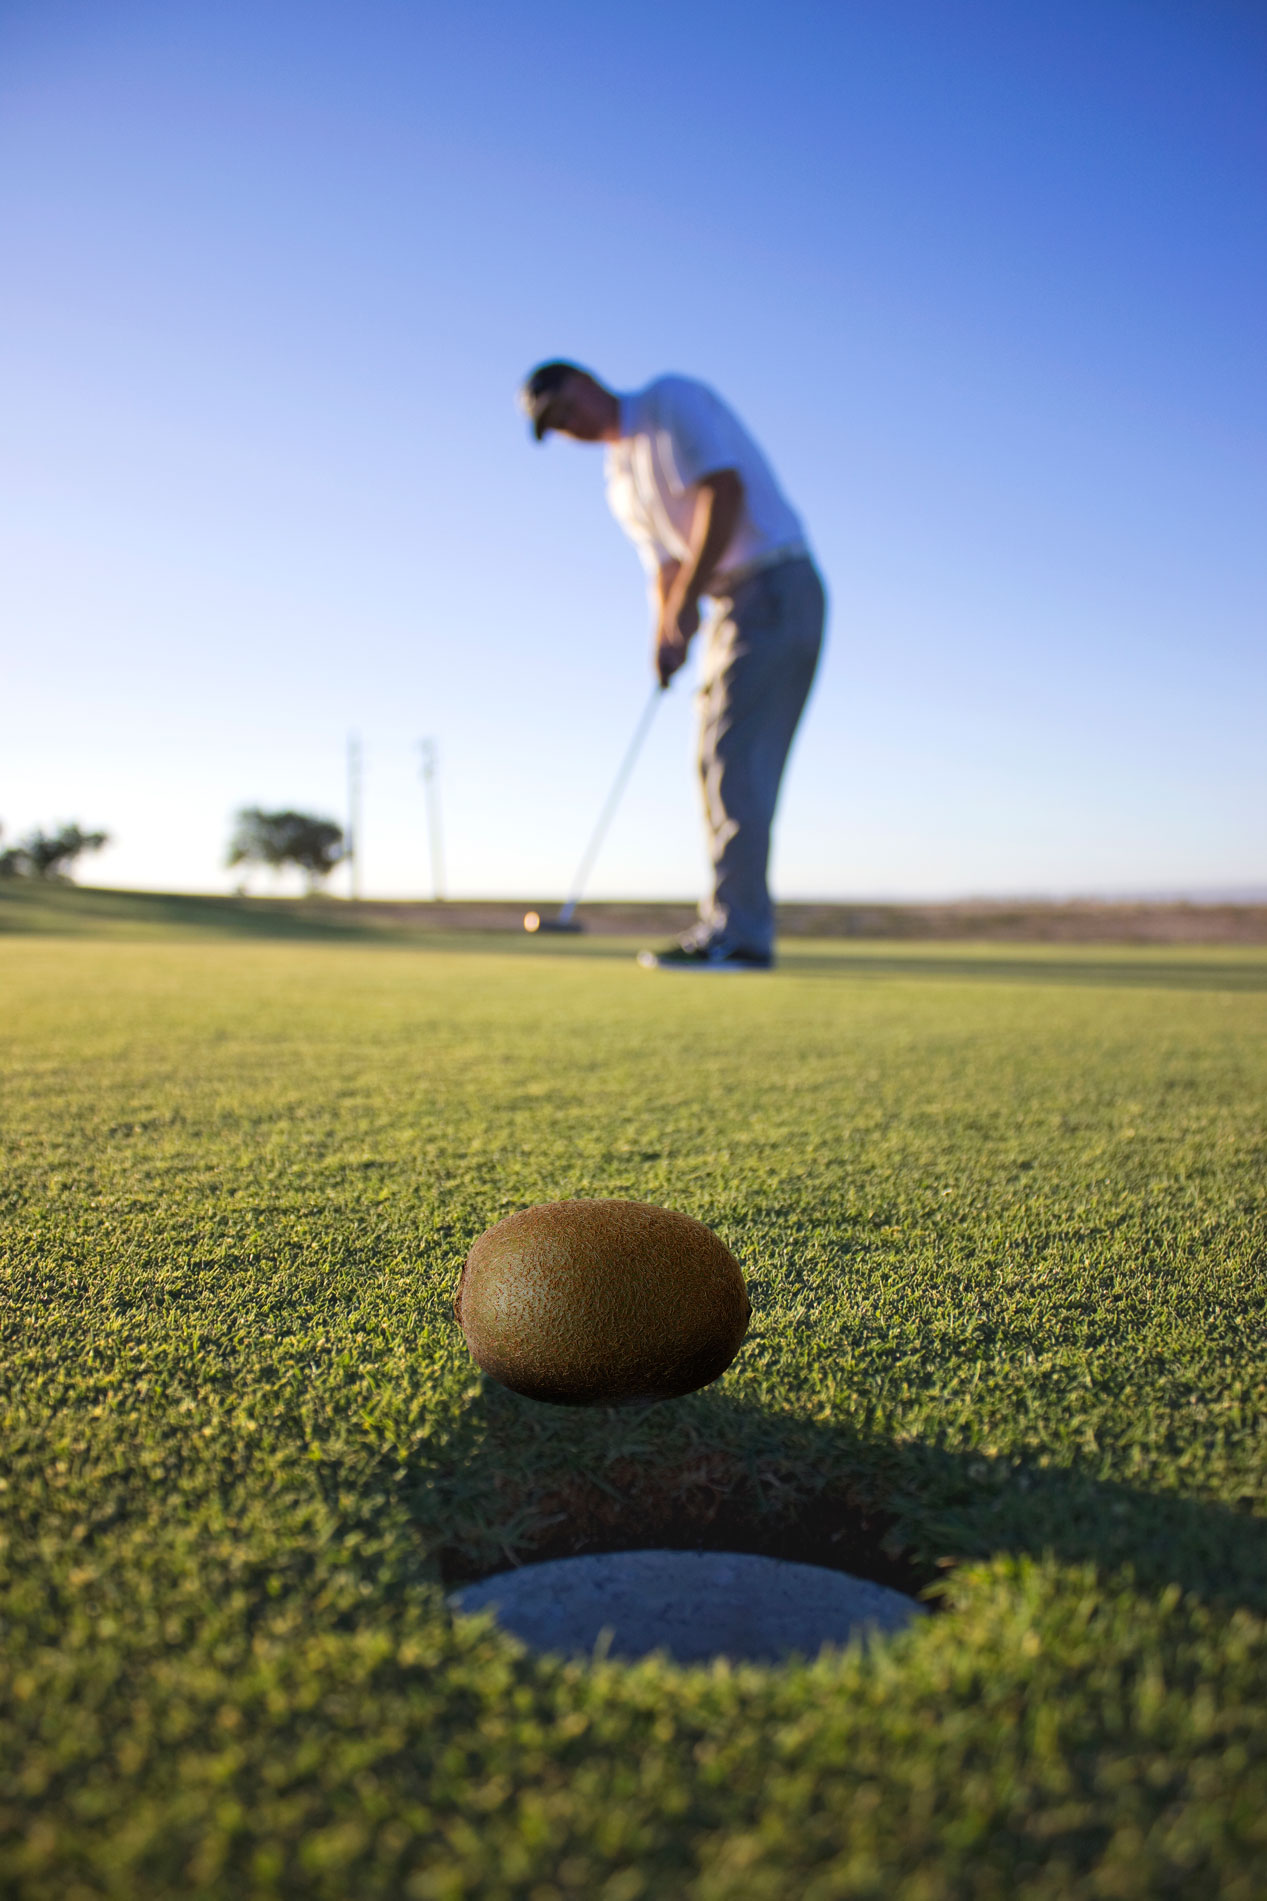 The Kiwi Putt - Ever company charity golf event features the legendary